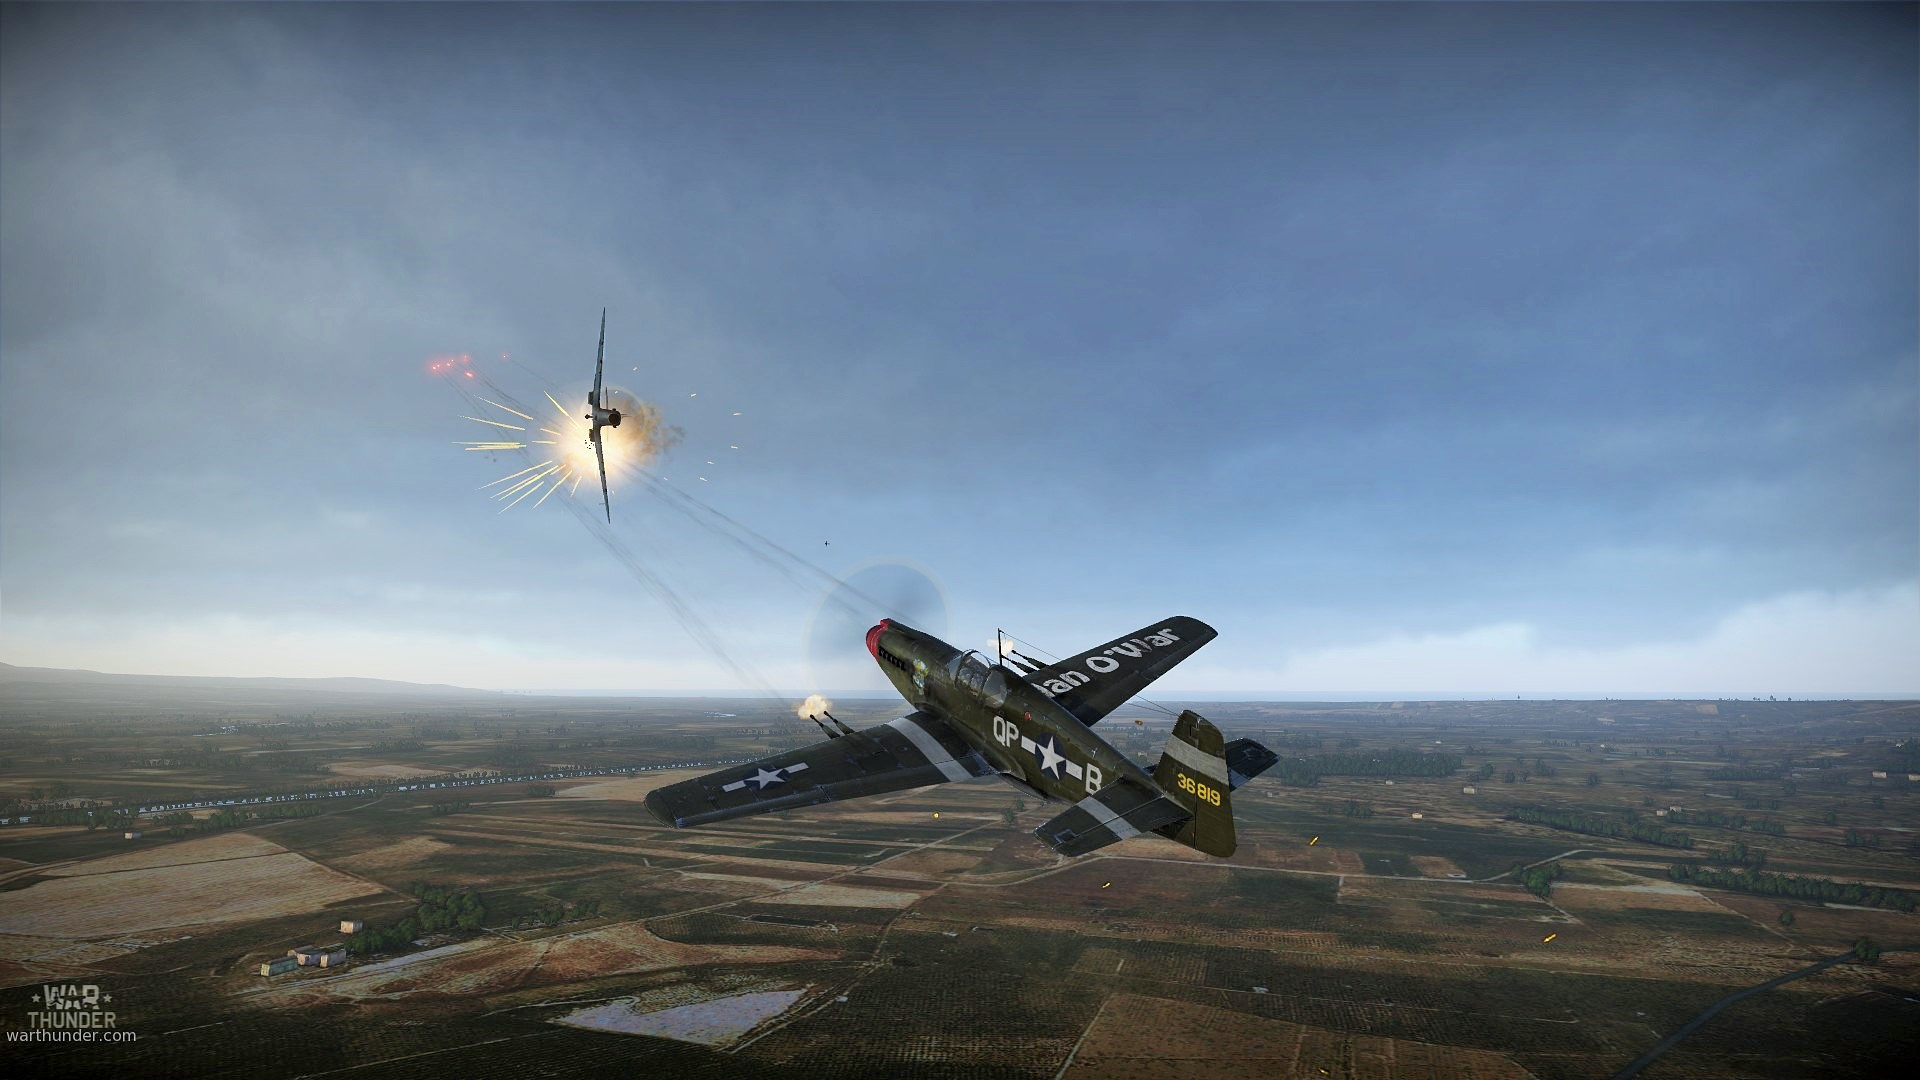 War thunder close call (3)